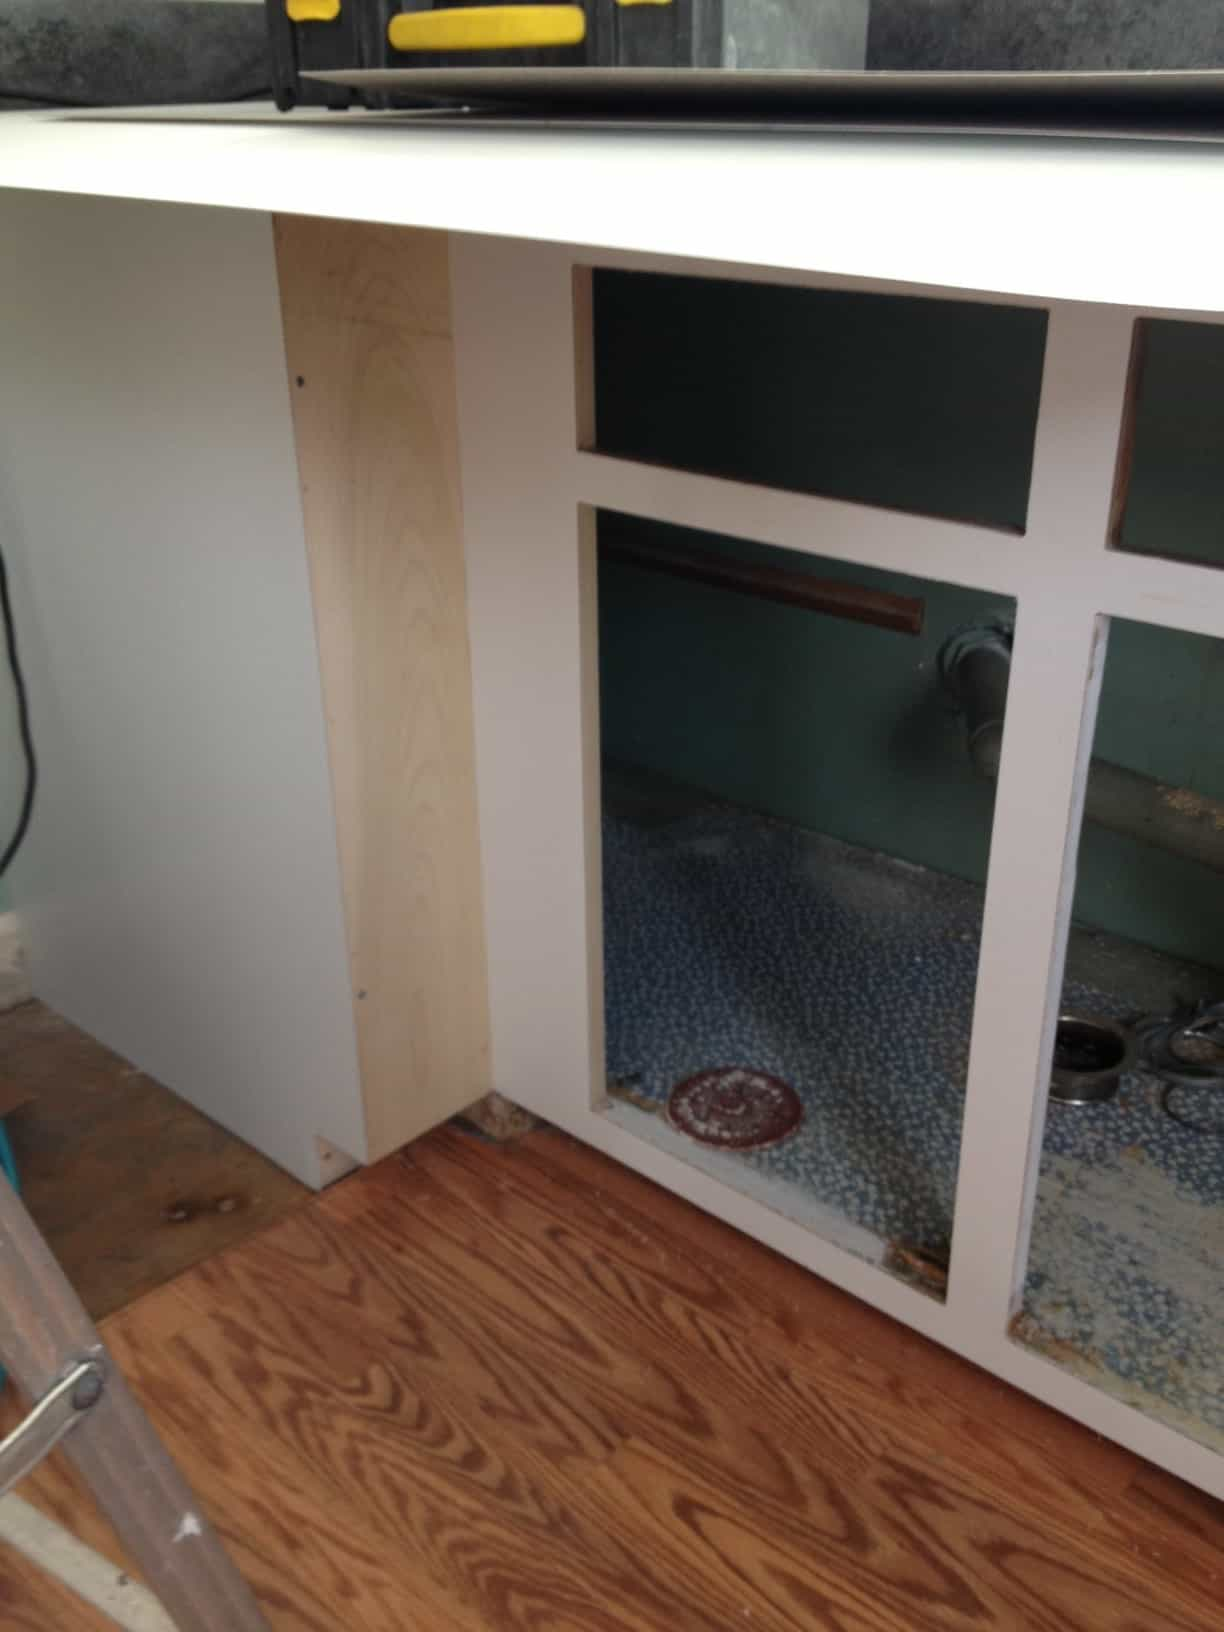 Open cabinets with doors removed